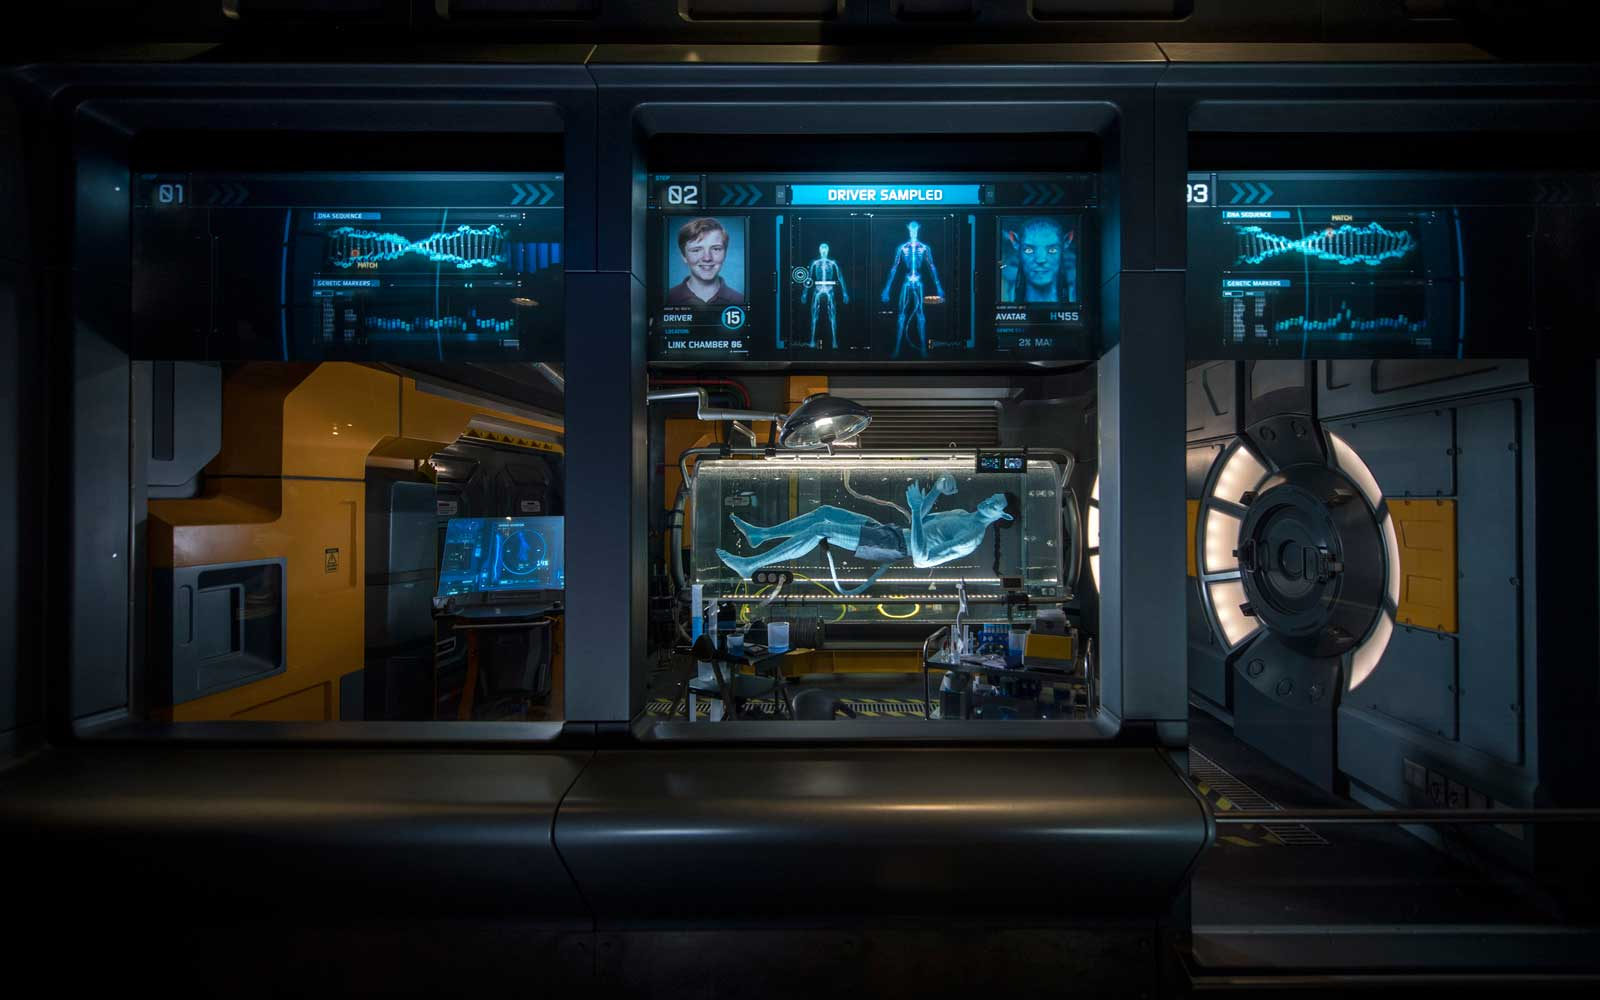 Avatar Flight of Passage, a 3-D thrilling adventure set to open on Pandora – The World of Avatar at Disney's Animal Kingdom